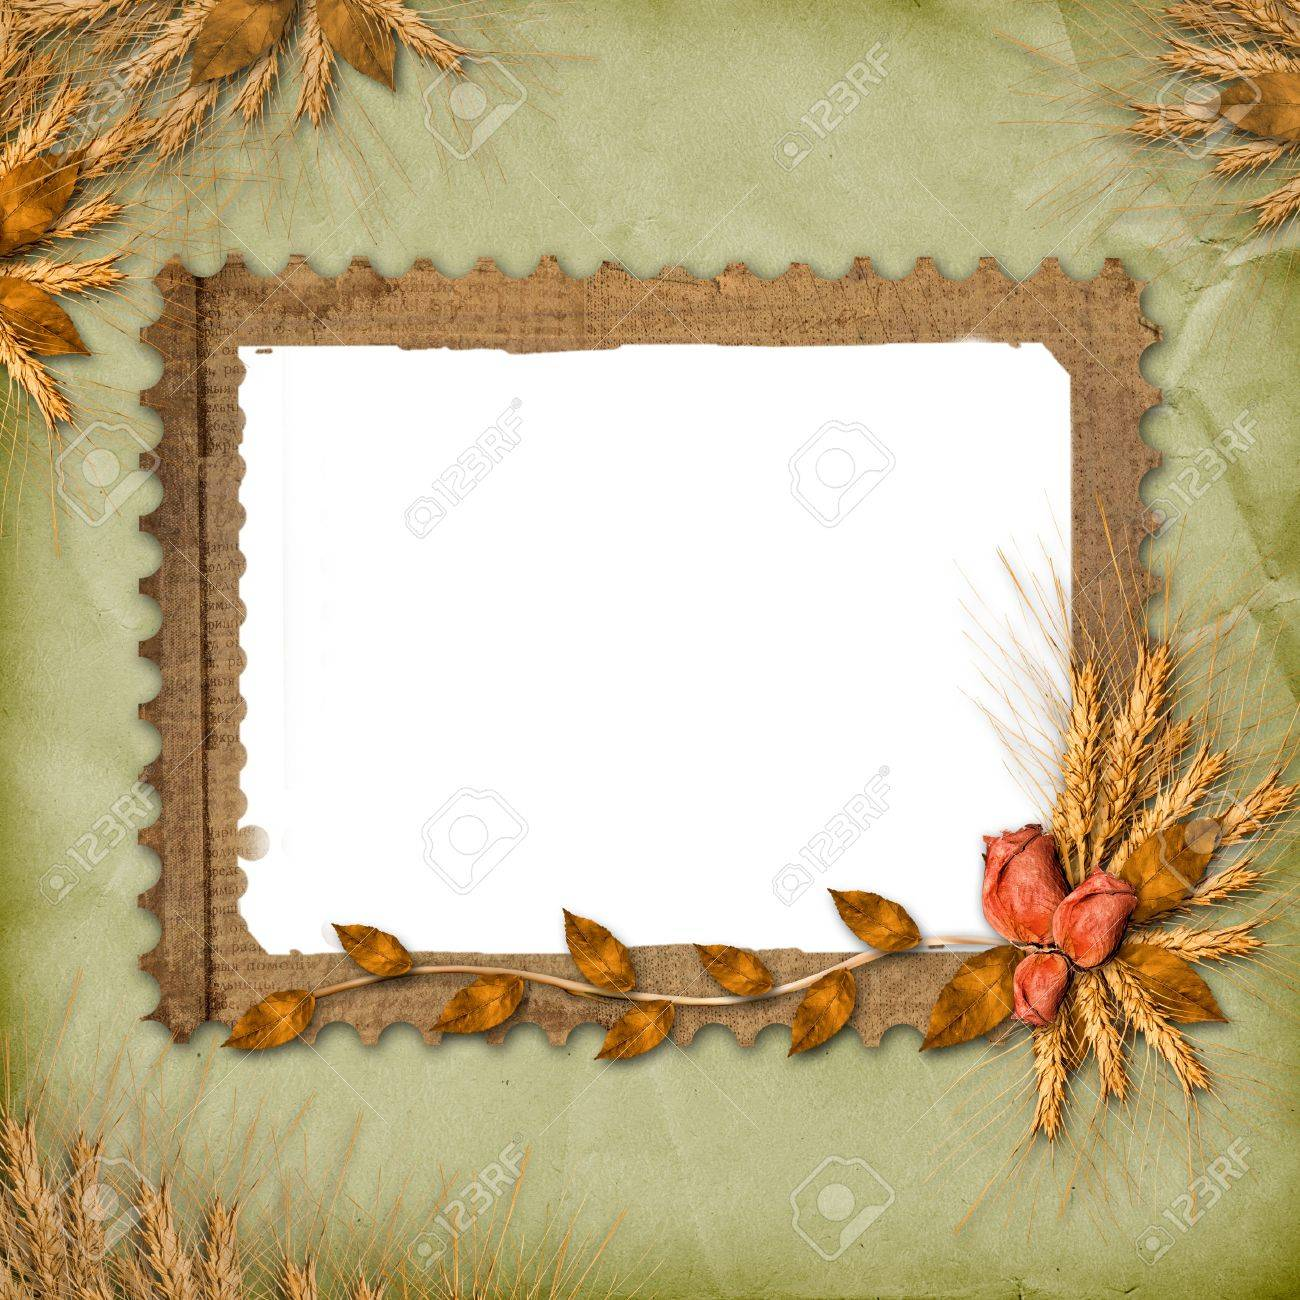 Grunge frame in scrapbooking style with bunch of rose Stock Photo - 5648752